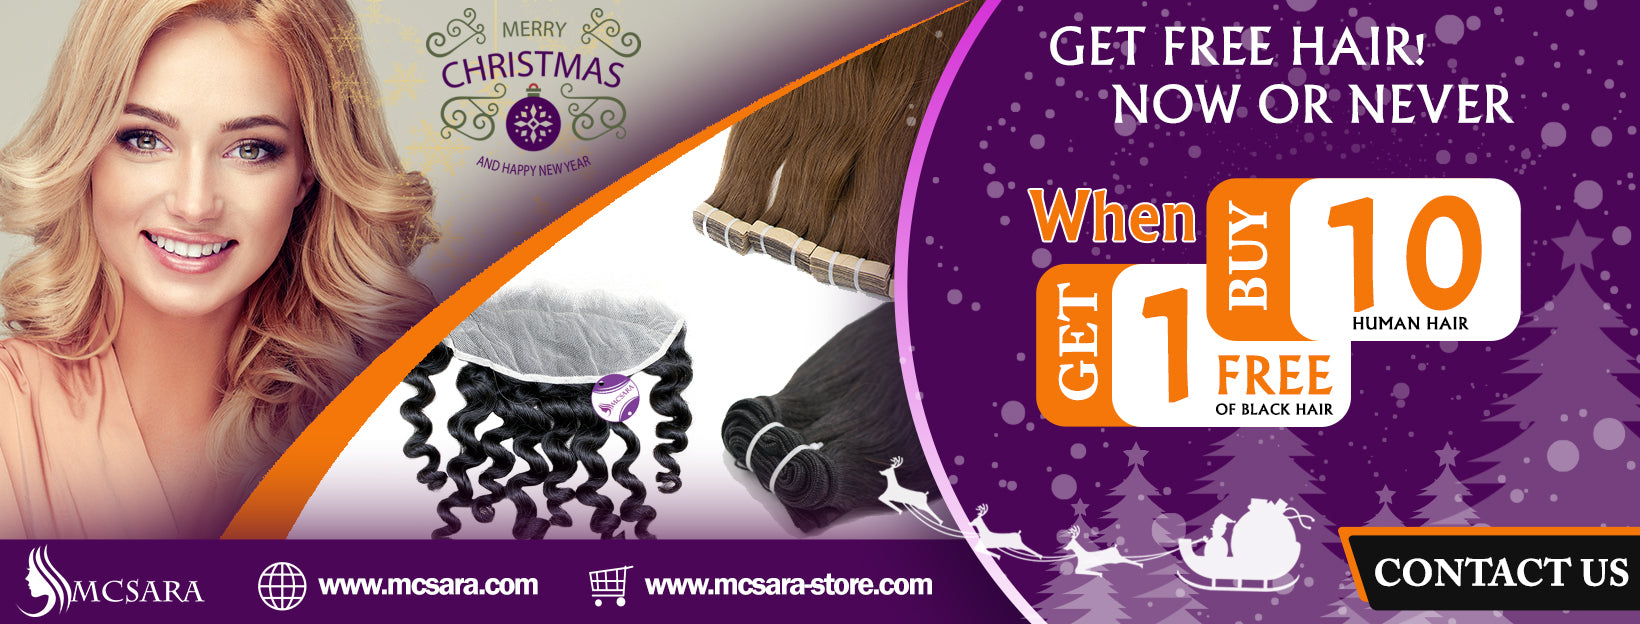 Sale off human hair of MCSARA - Merry Chrismast and happy newyear 2020